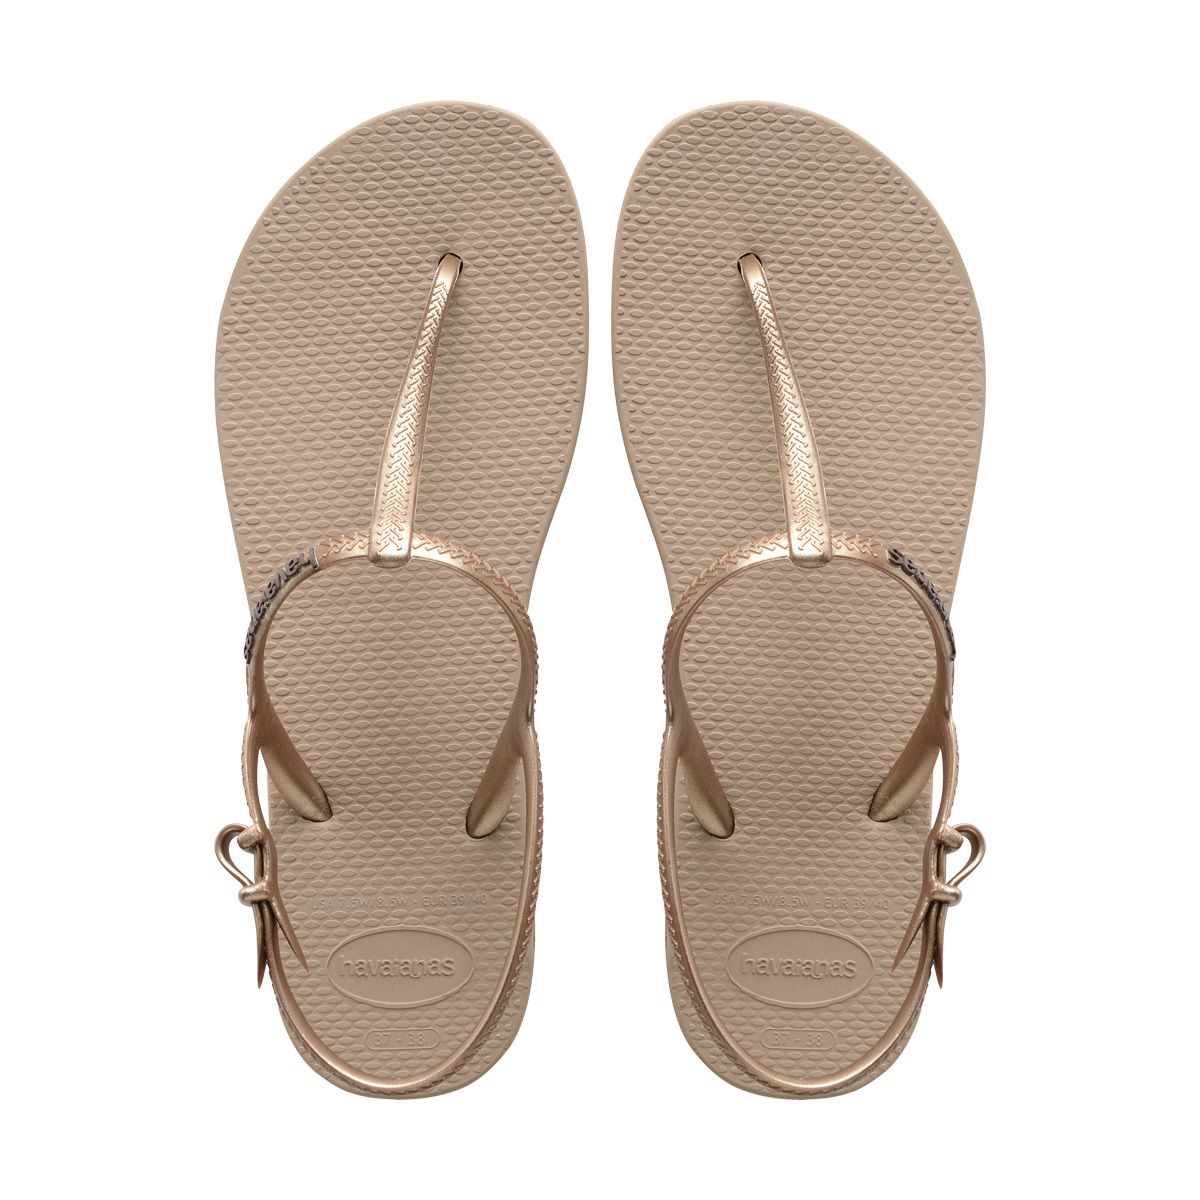 39/40 - Rose Gold - Women's Freedom - Sandals for Women - Havaianas · Shoes  ...